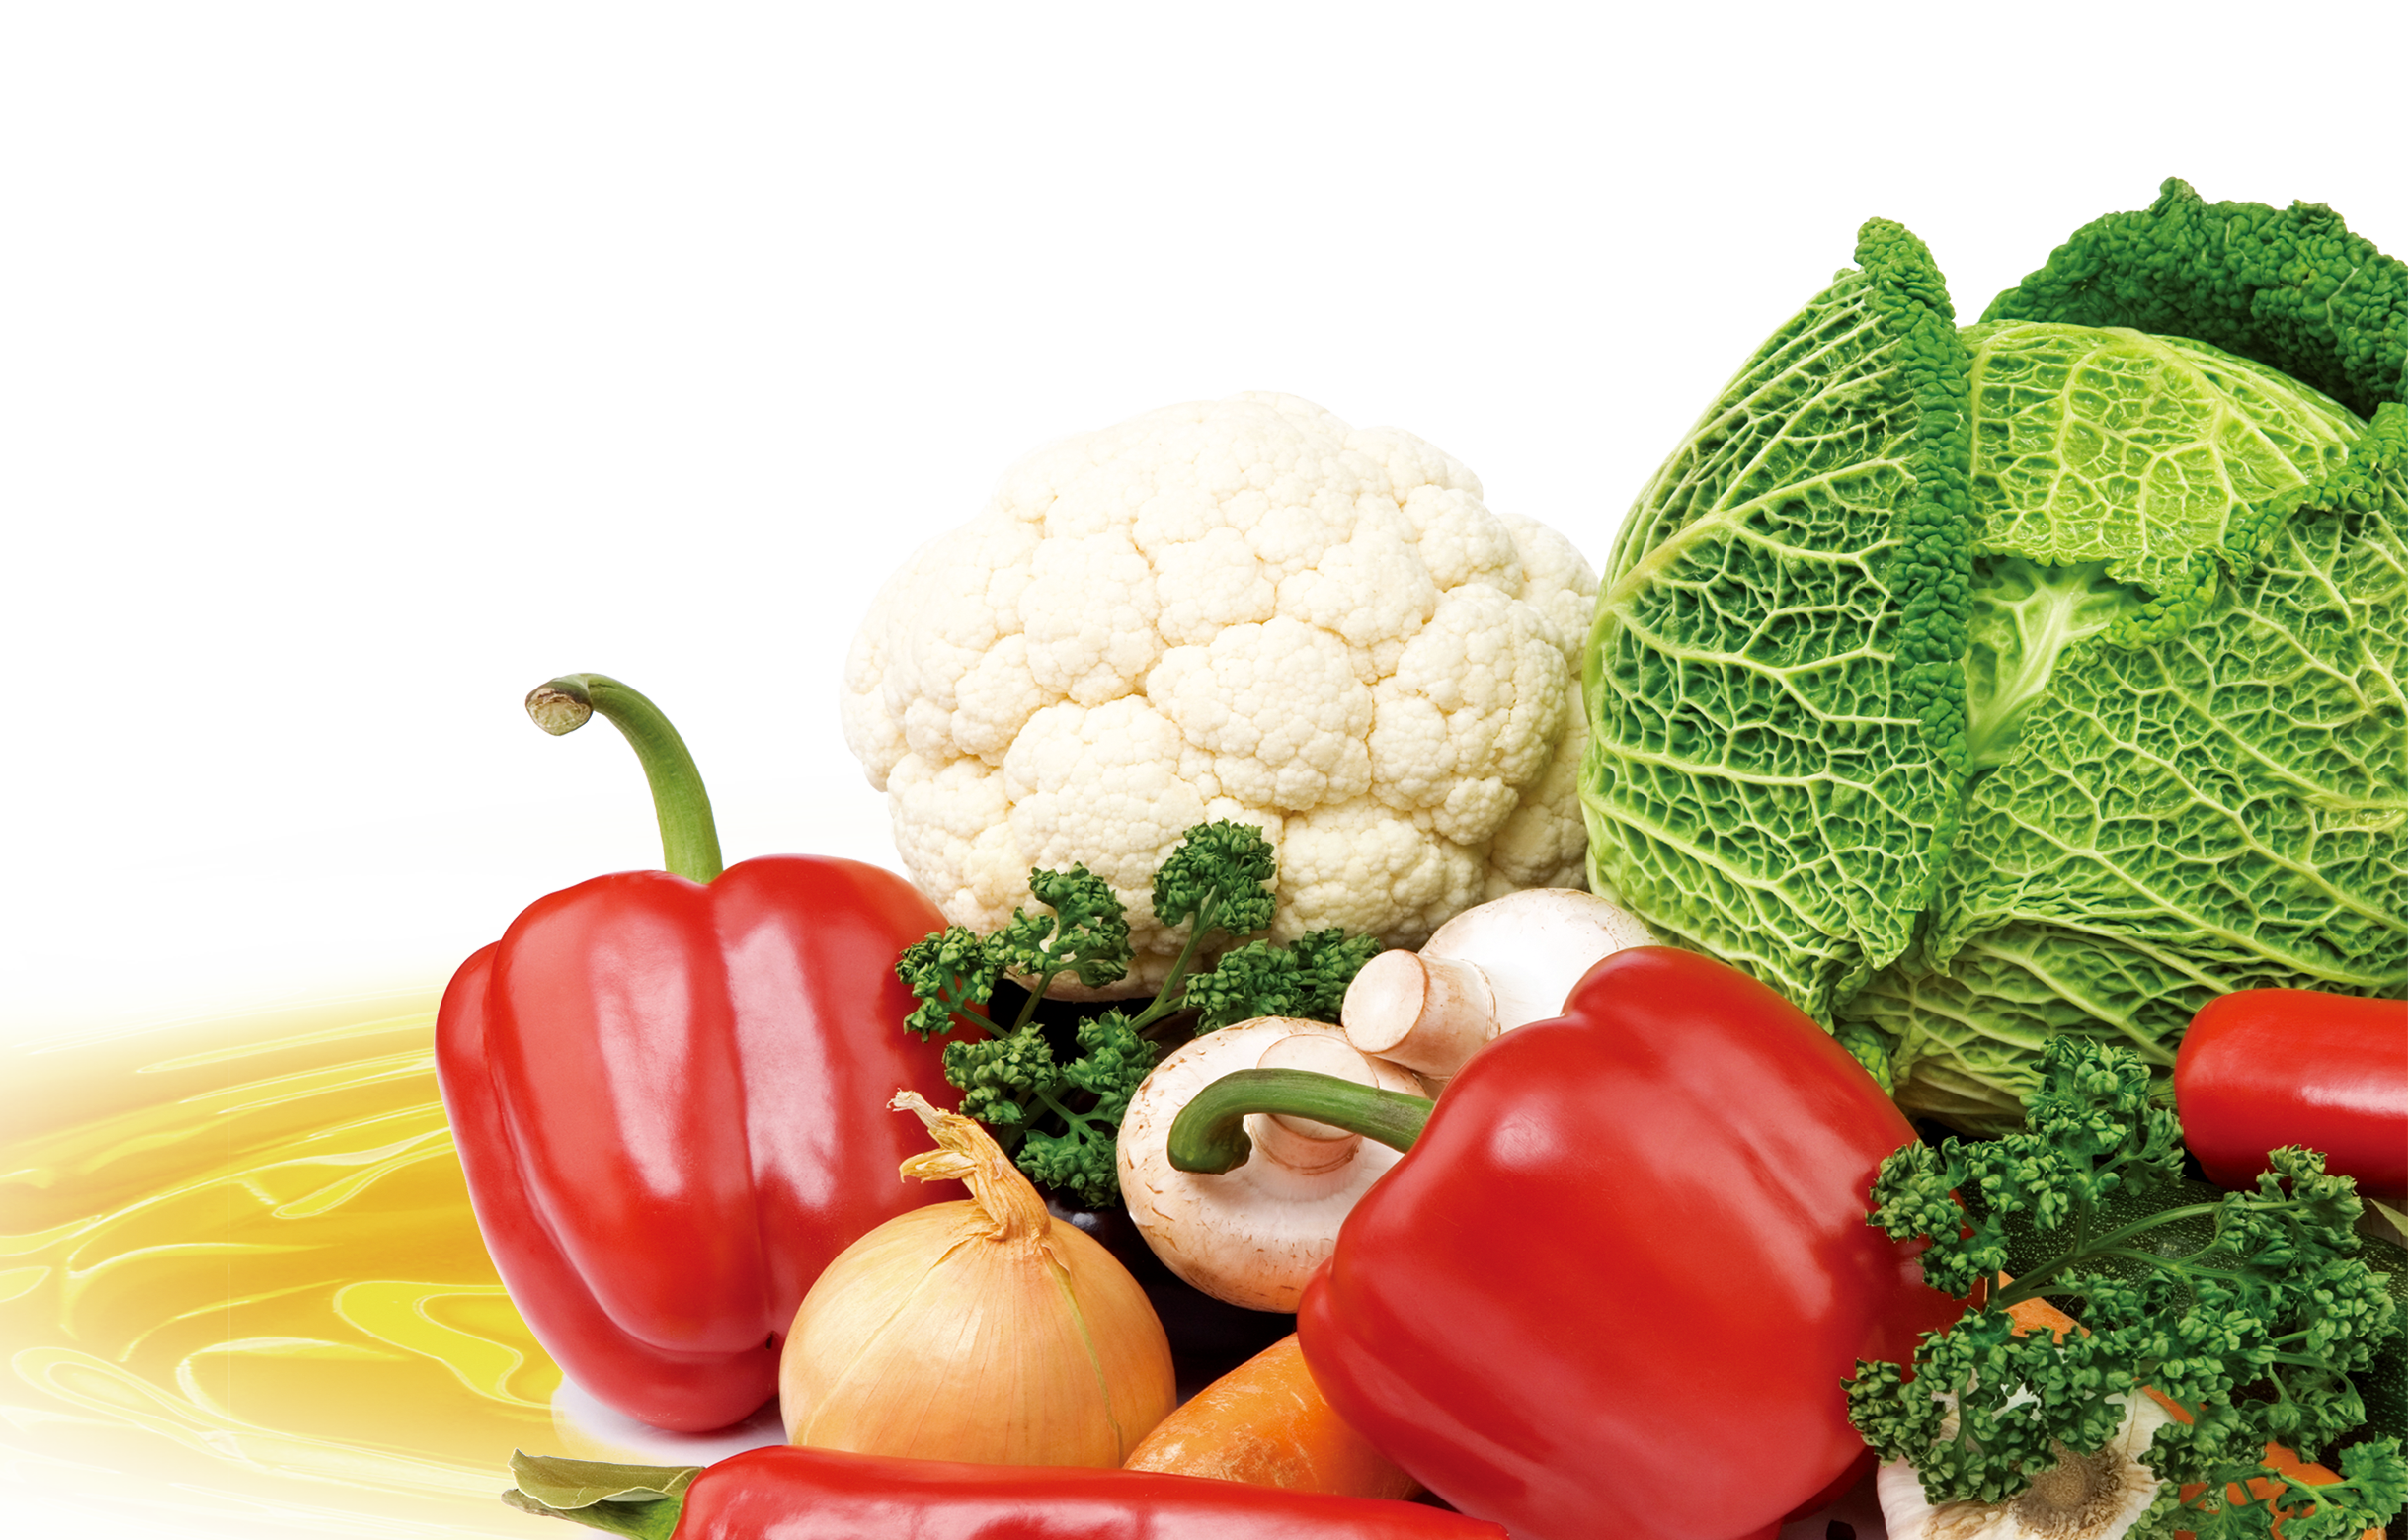 Fresh vegetables png. Vegetable vinaigrette fruit food